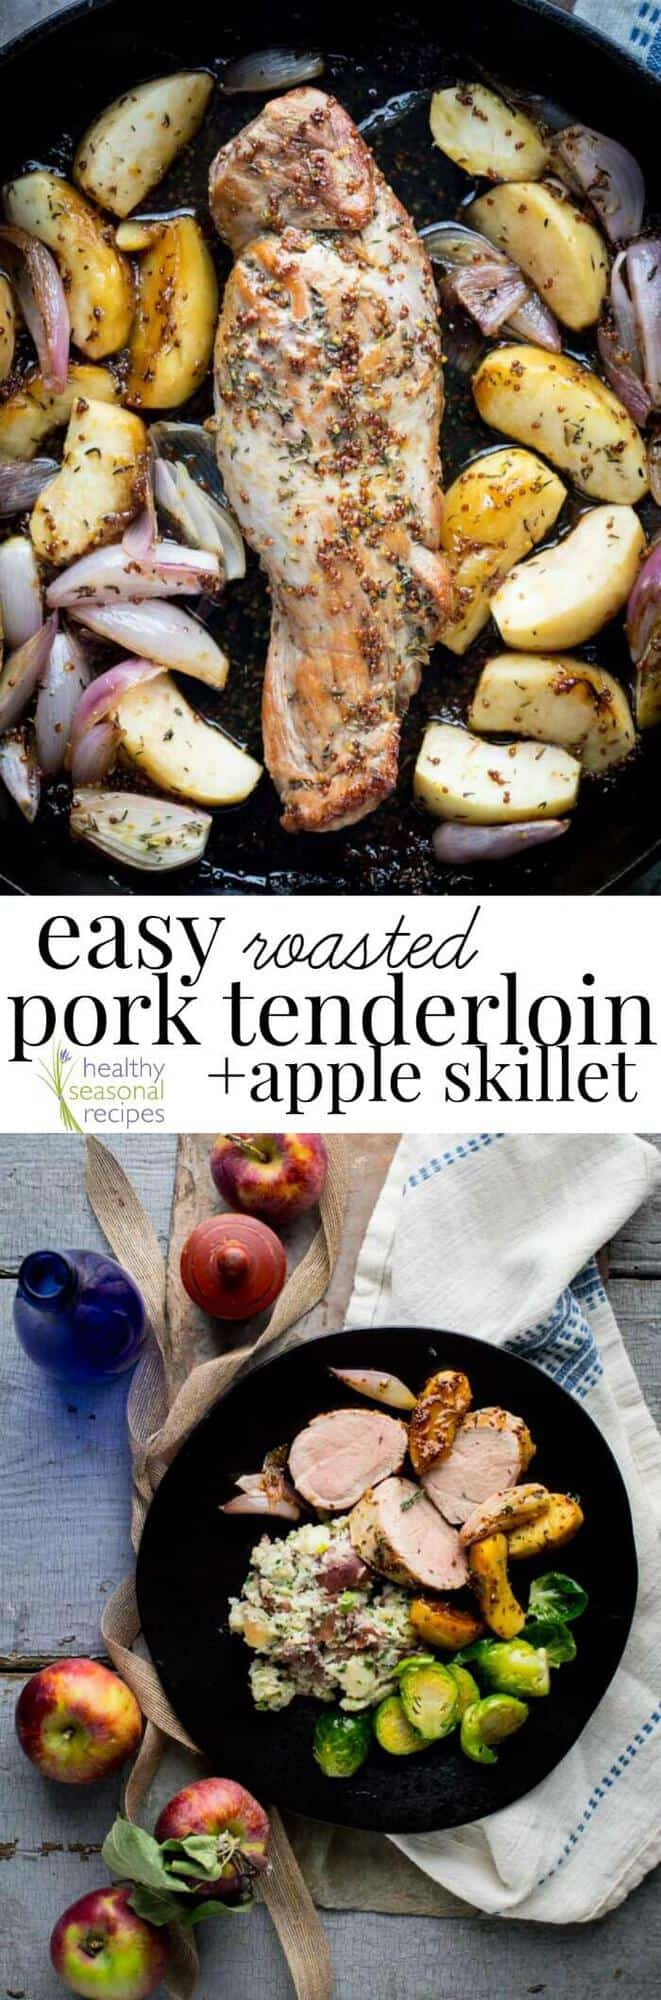 easy roasted pork tenderloin and apple skillet